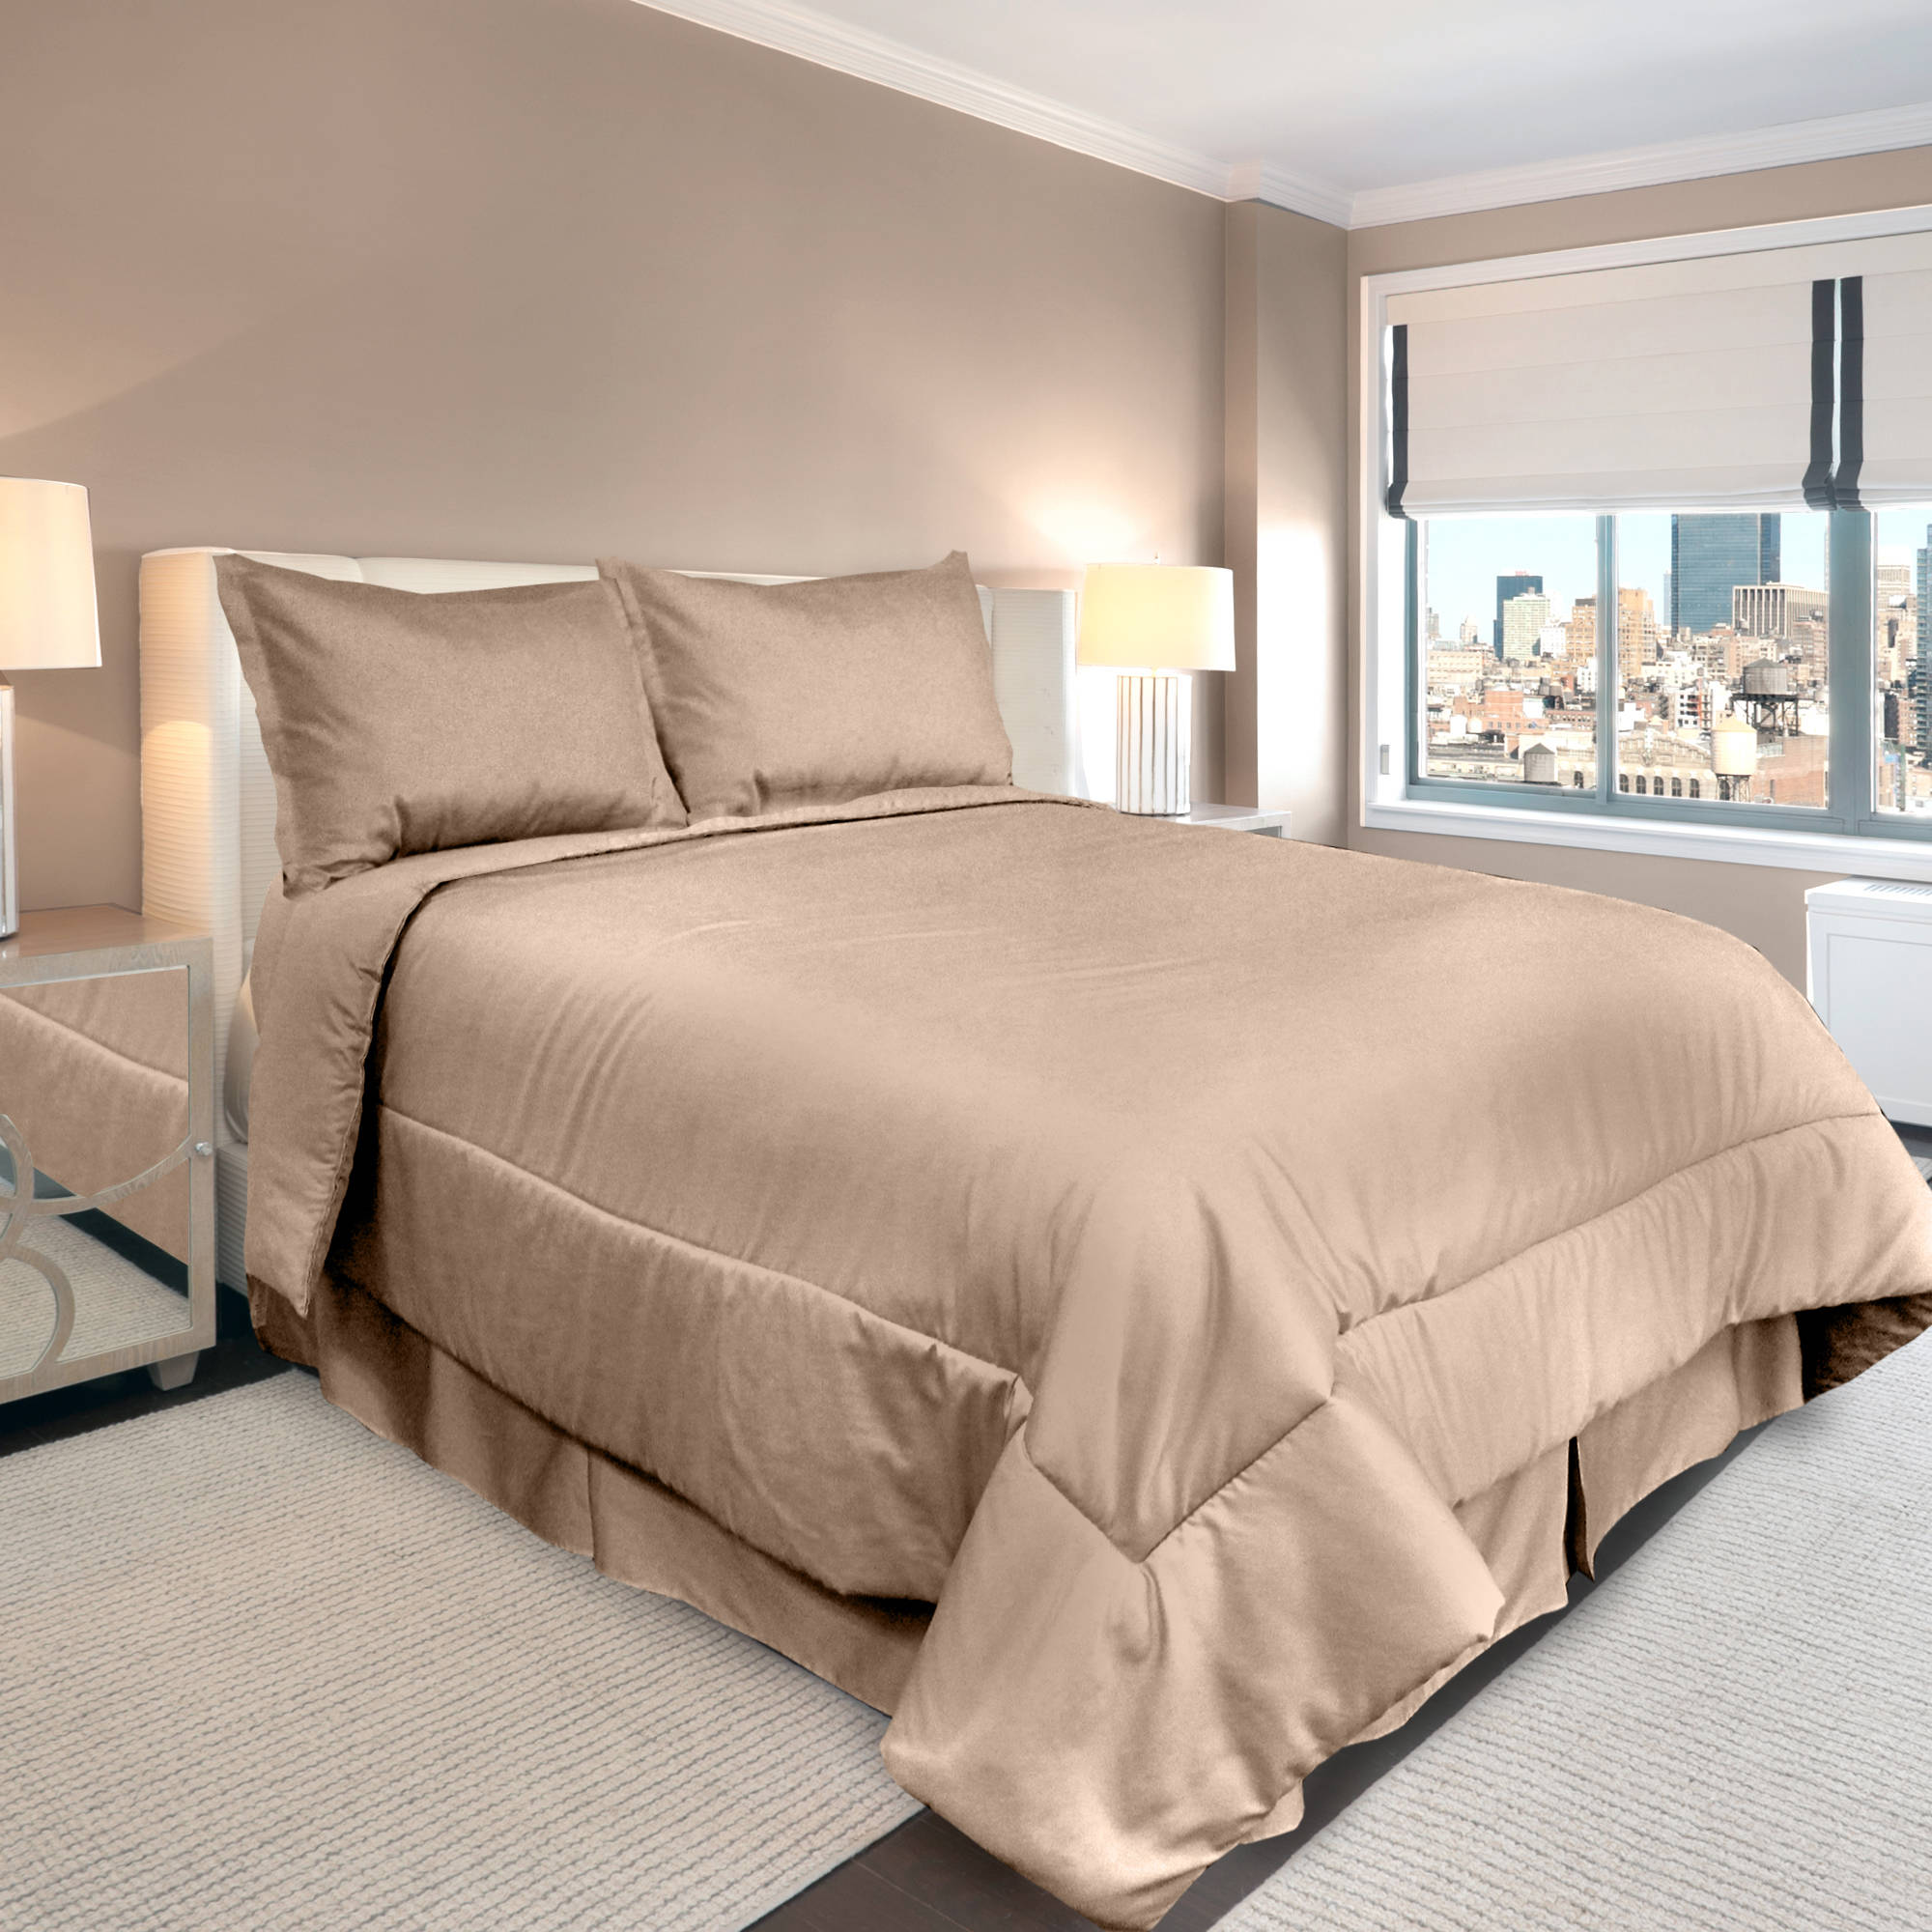 Veratex Supreme Sateen 300-Thread-Count Solid Bedding Comforter Set